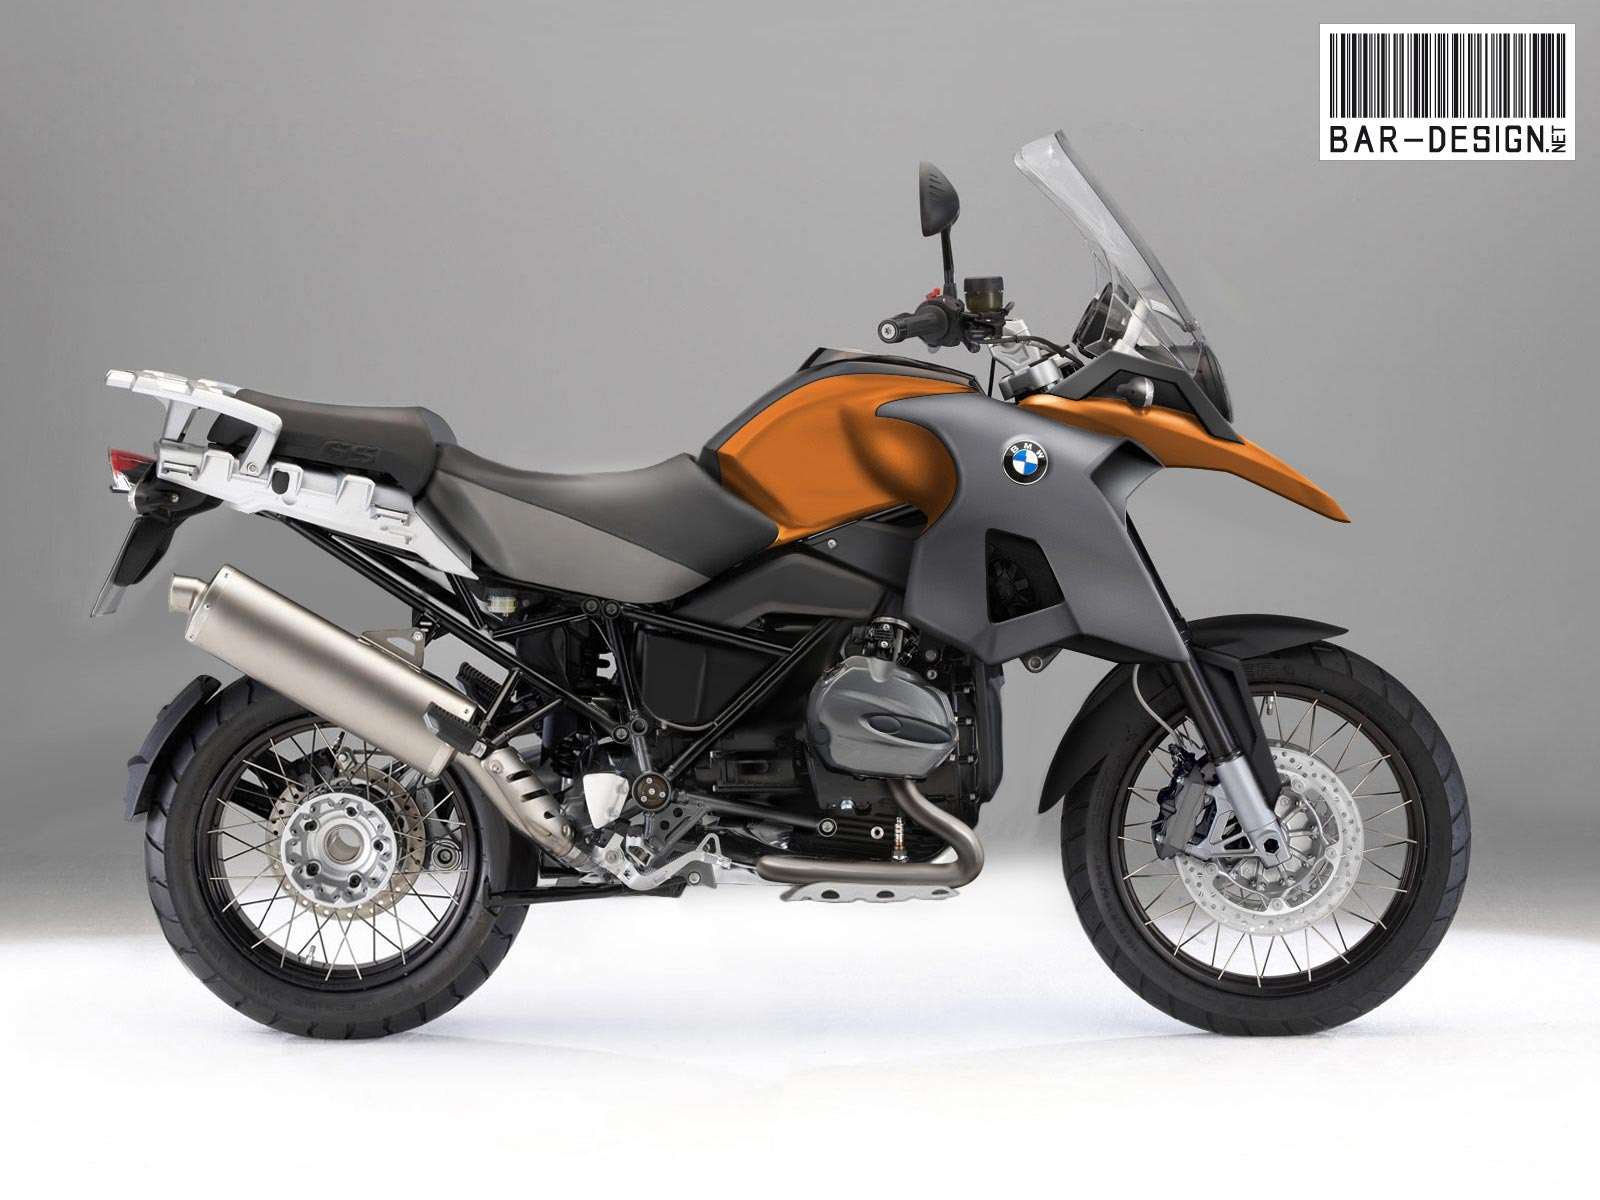 2012 Or 2013 Bmw R1200gs Anything More On This